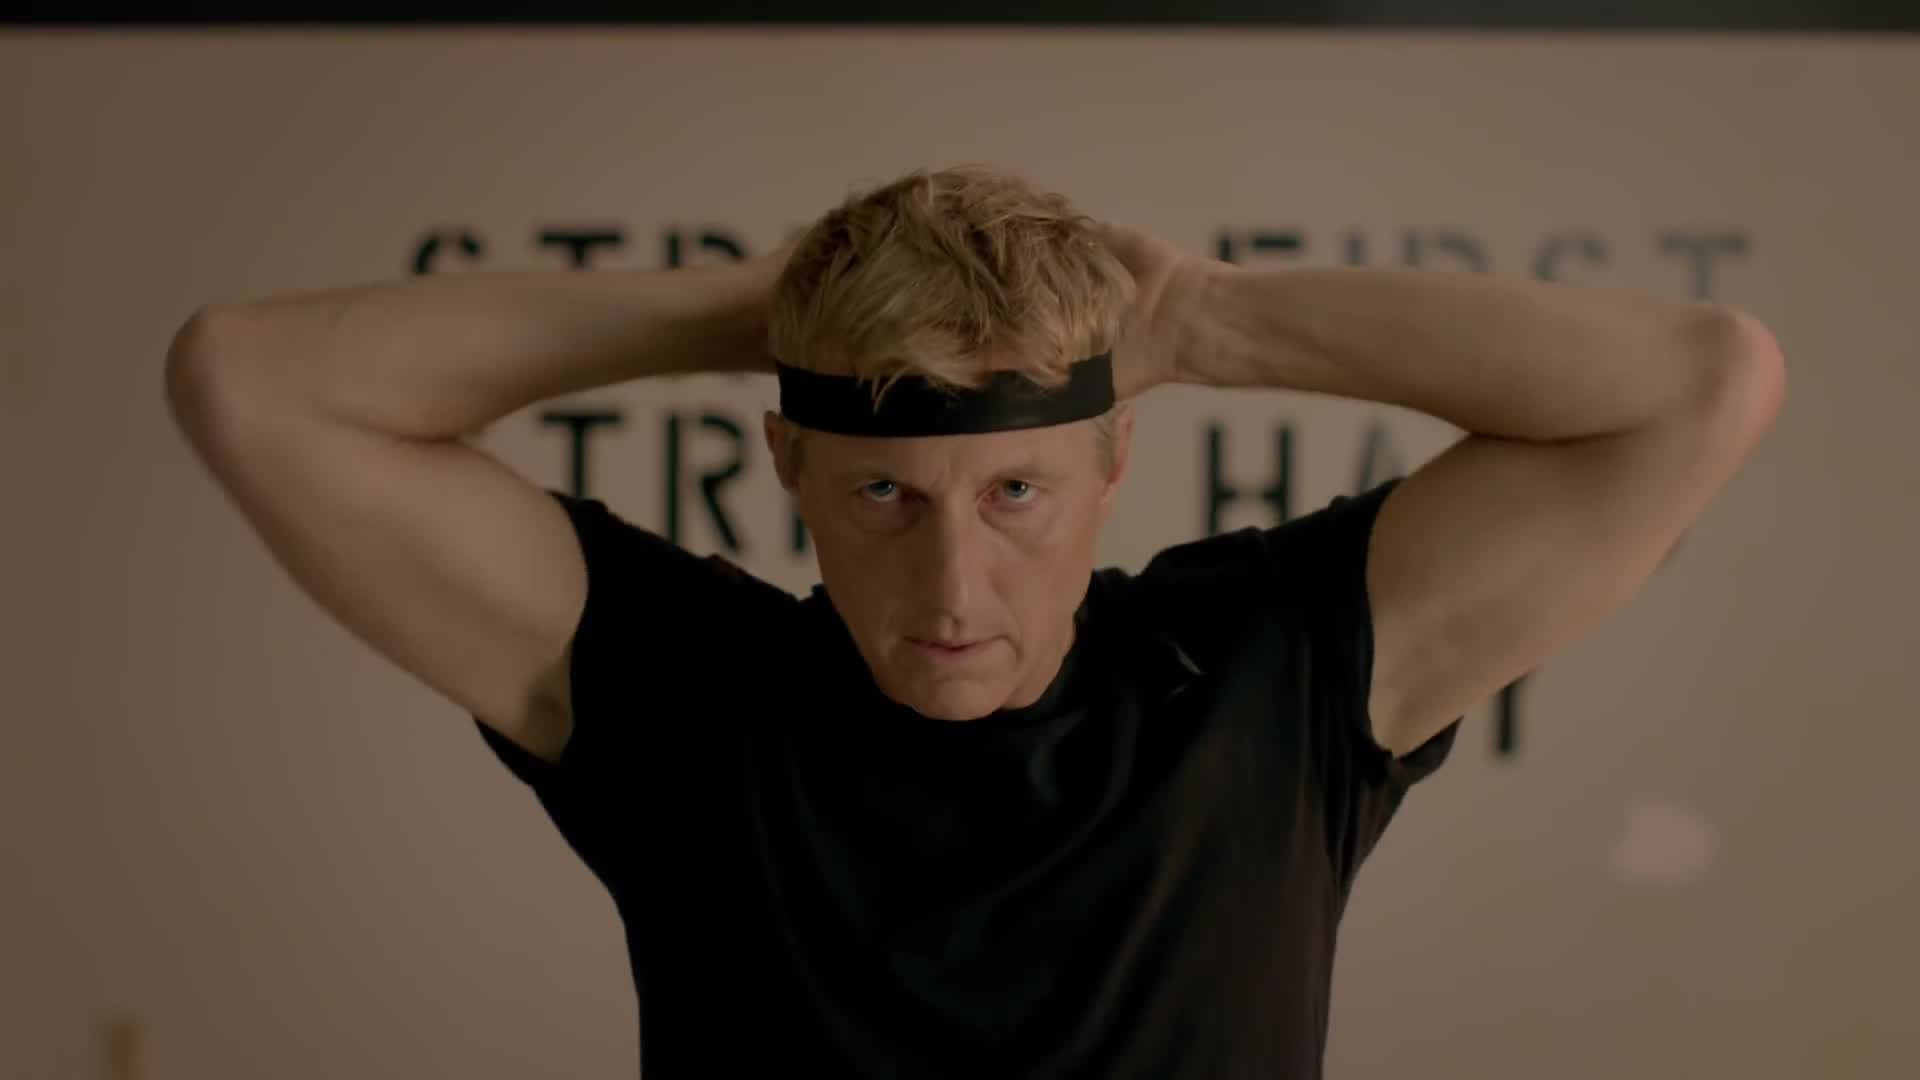 Cobra Kai film completo in italiano download gratuito hd 1080p